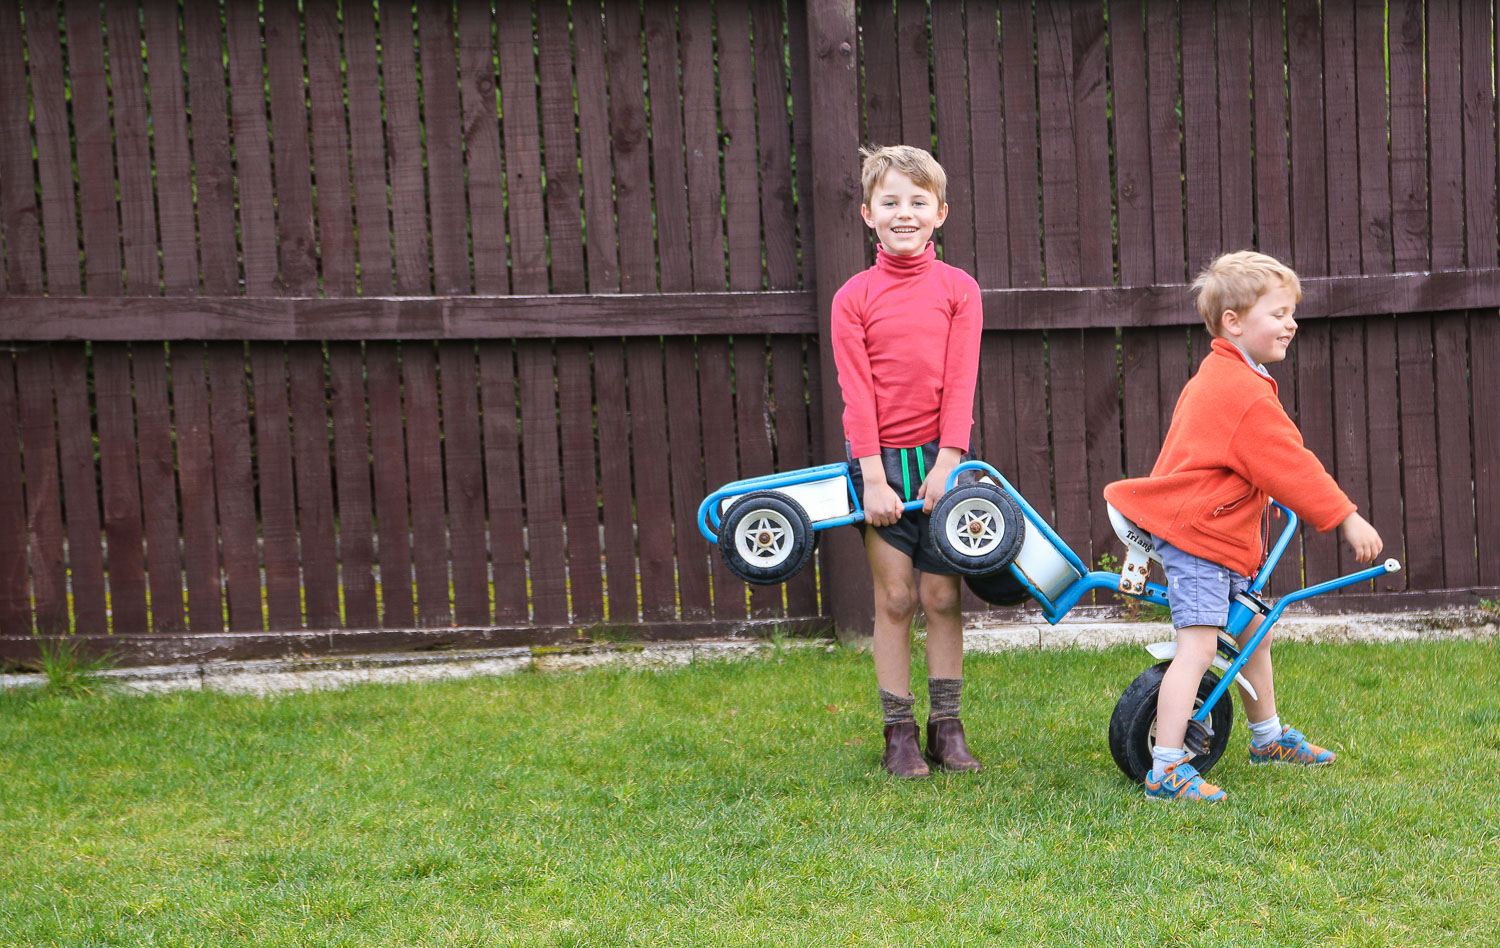 brothers-playing-together-with-trike-in-garden.jpg